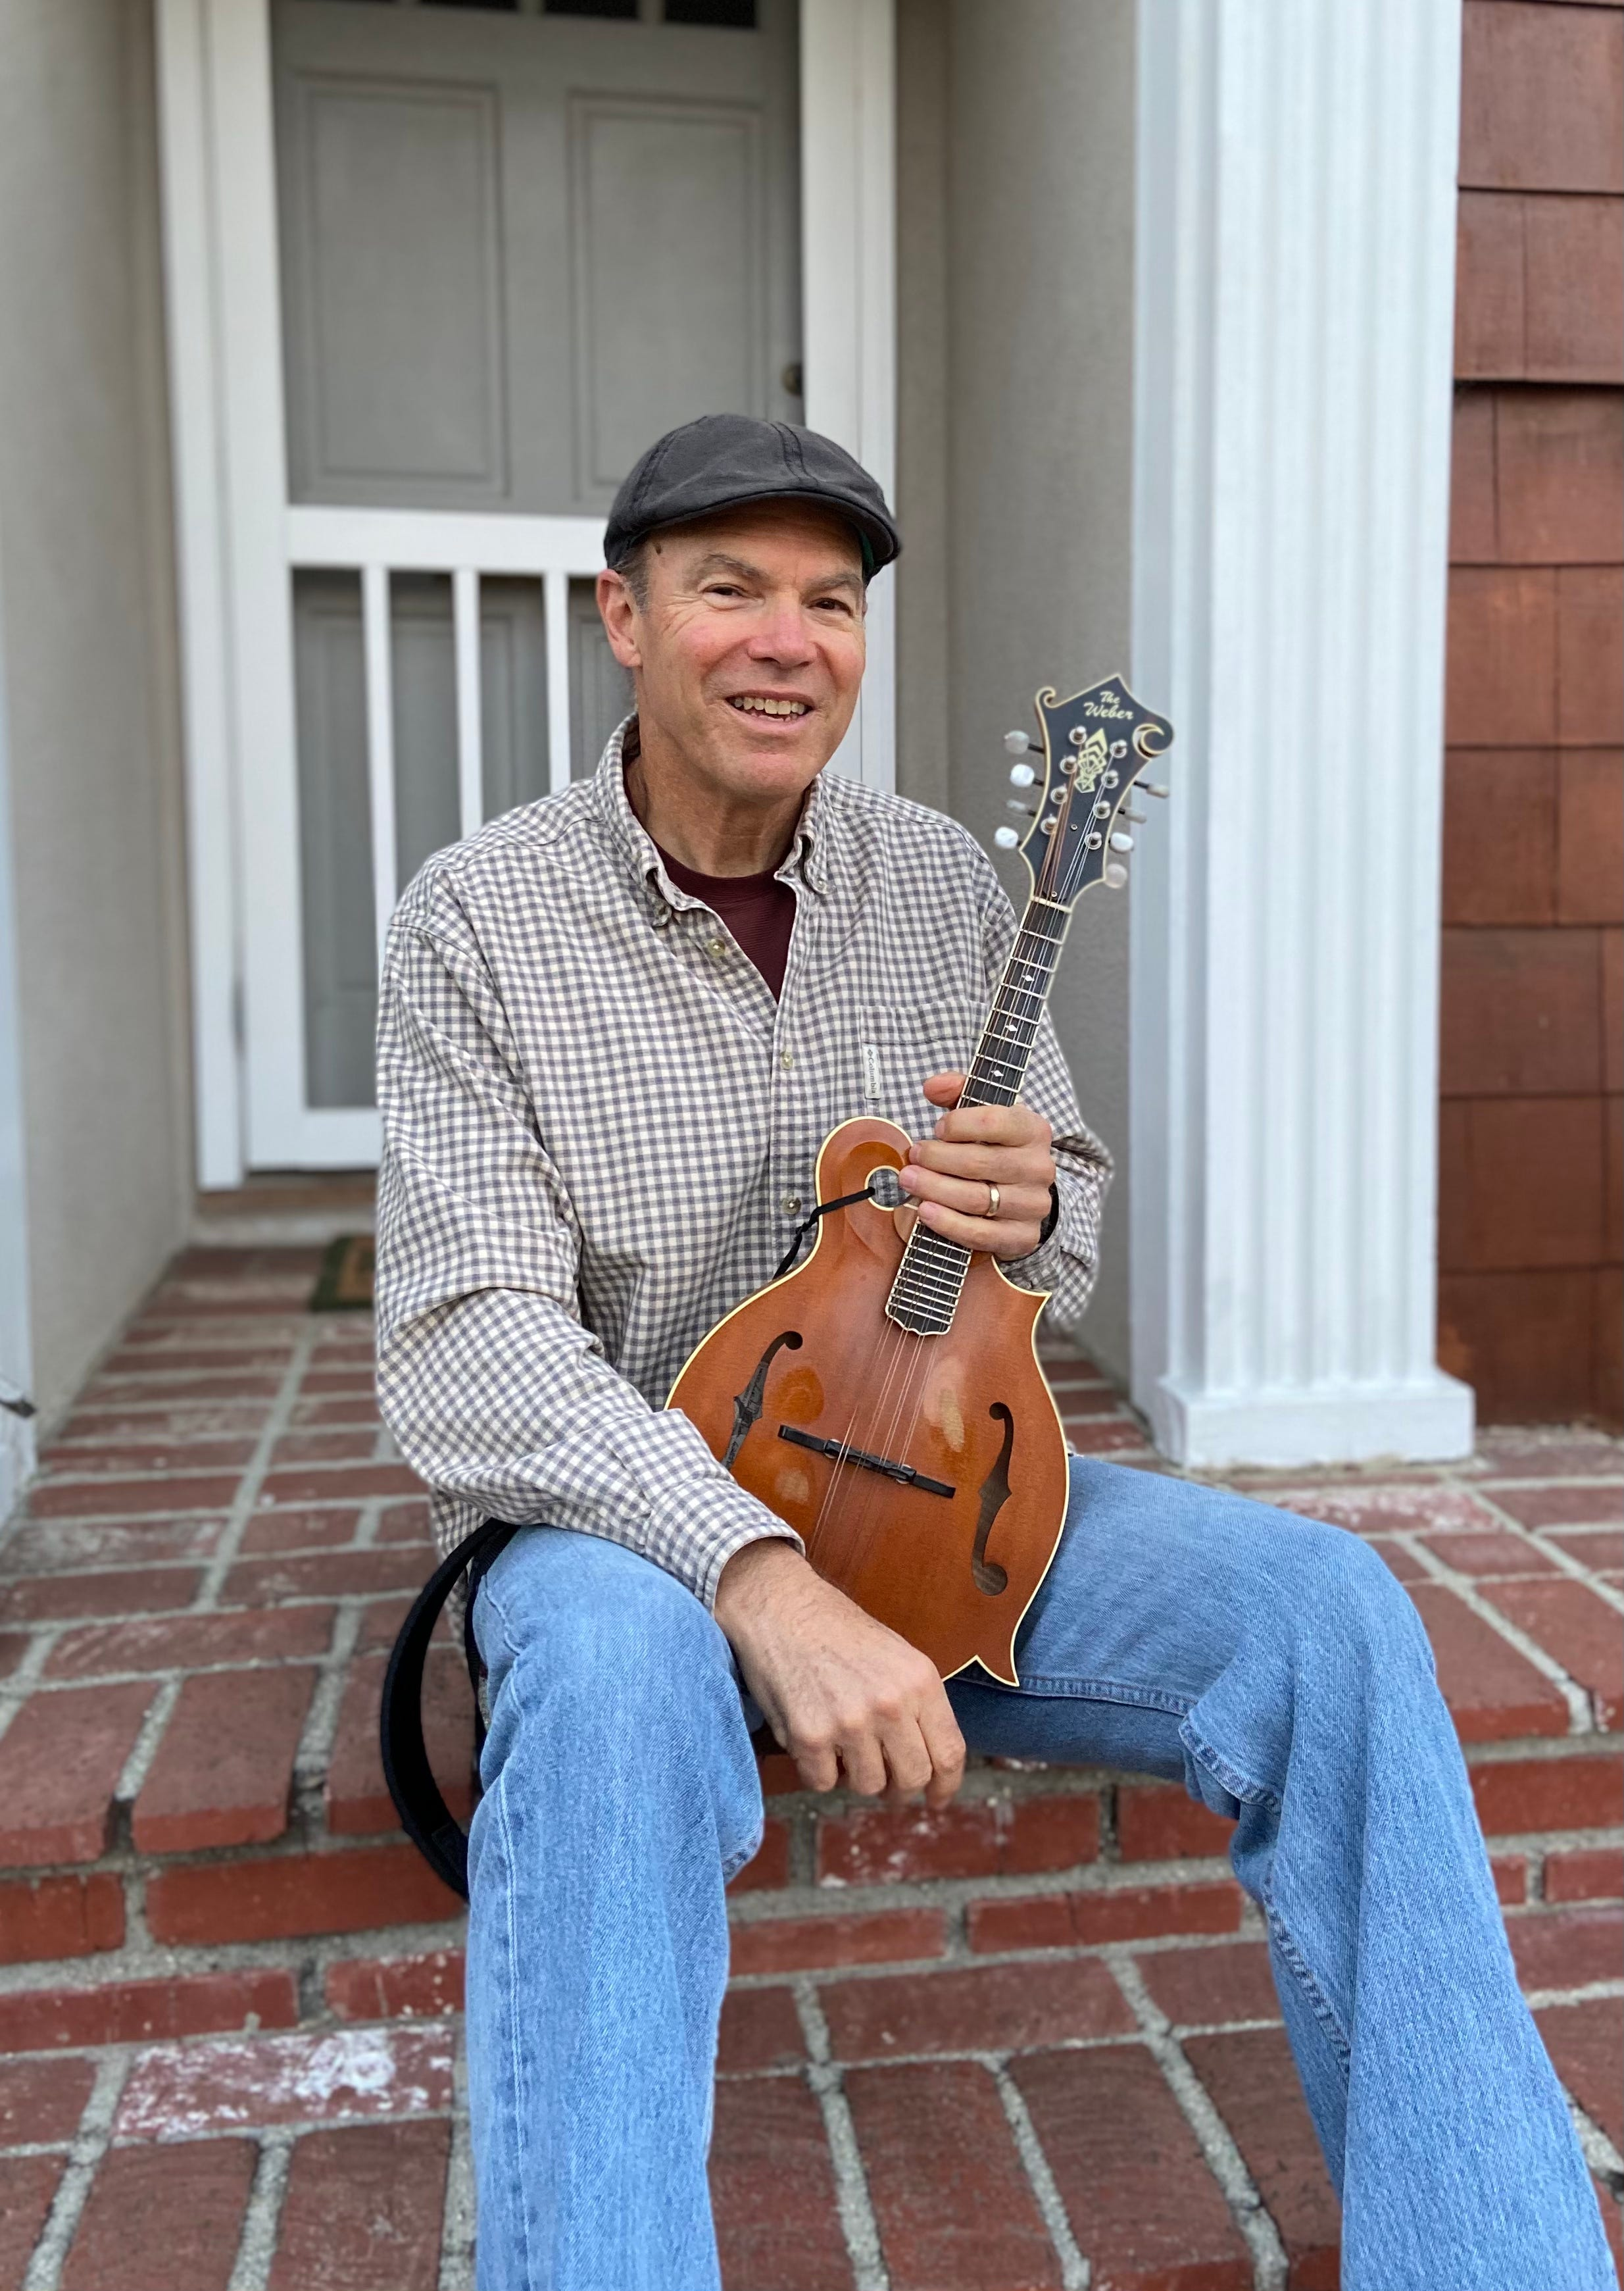 John Gahan, of Ventura, played his mandolin nightly on his front porch as COVID-19 started to spread in Ventura County.